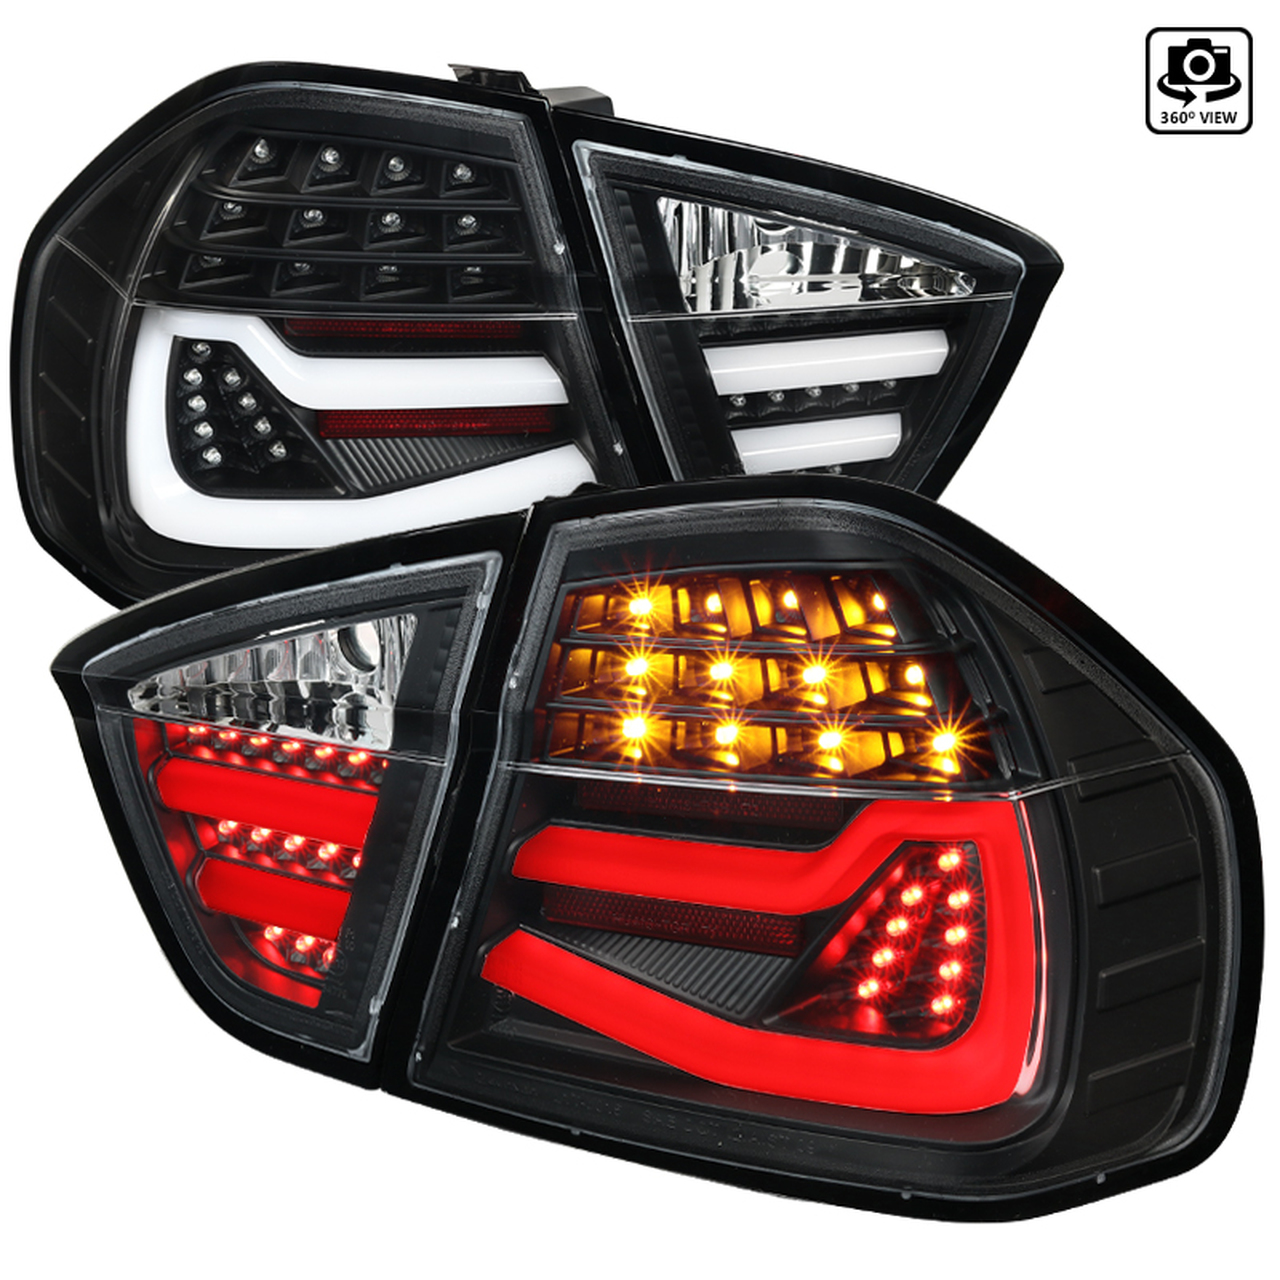 Spec-D Tuning Black LED Tail Lights - Spec-D Tuning LT-E9005JMLED-TM